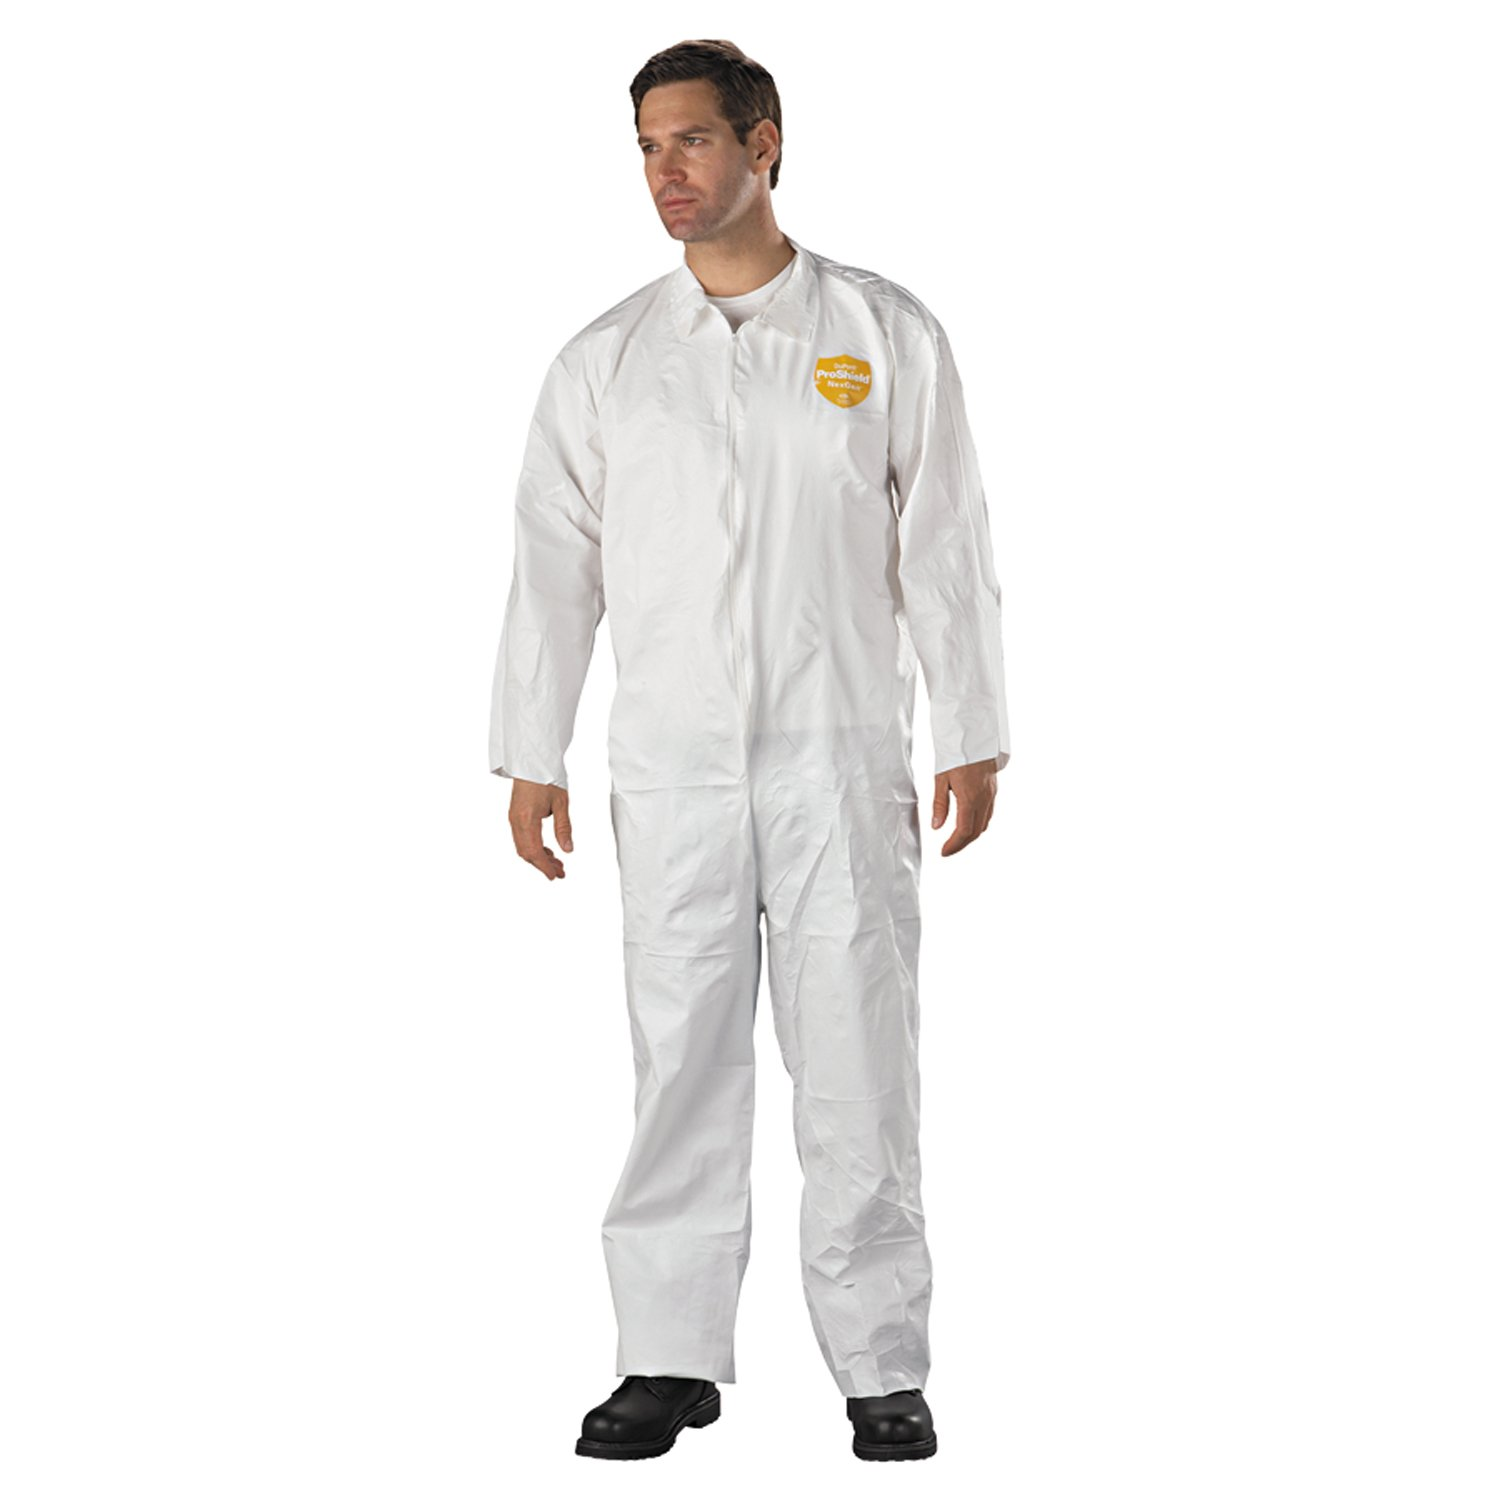 3XL Pack of 25 Dupont ng127s-np-3X ProShield NexGen Coveralls with Attached Hood White